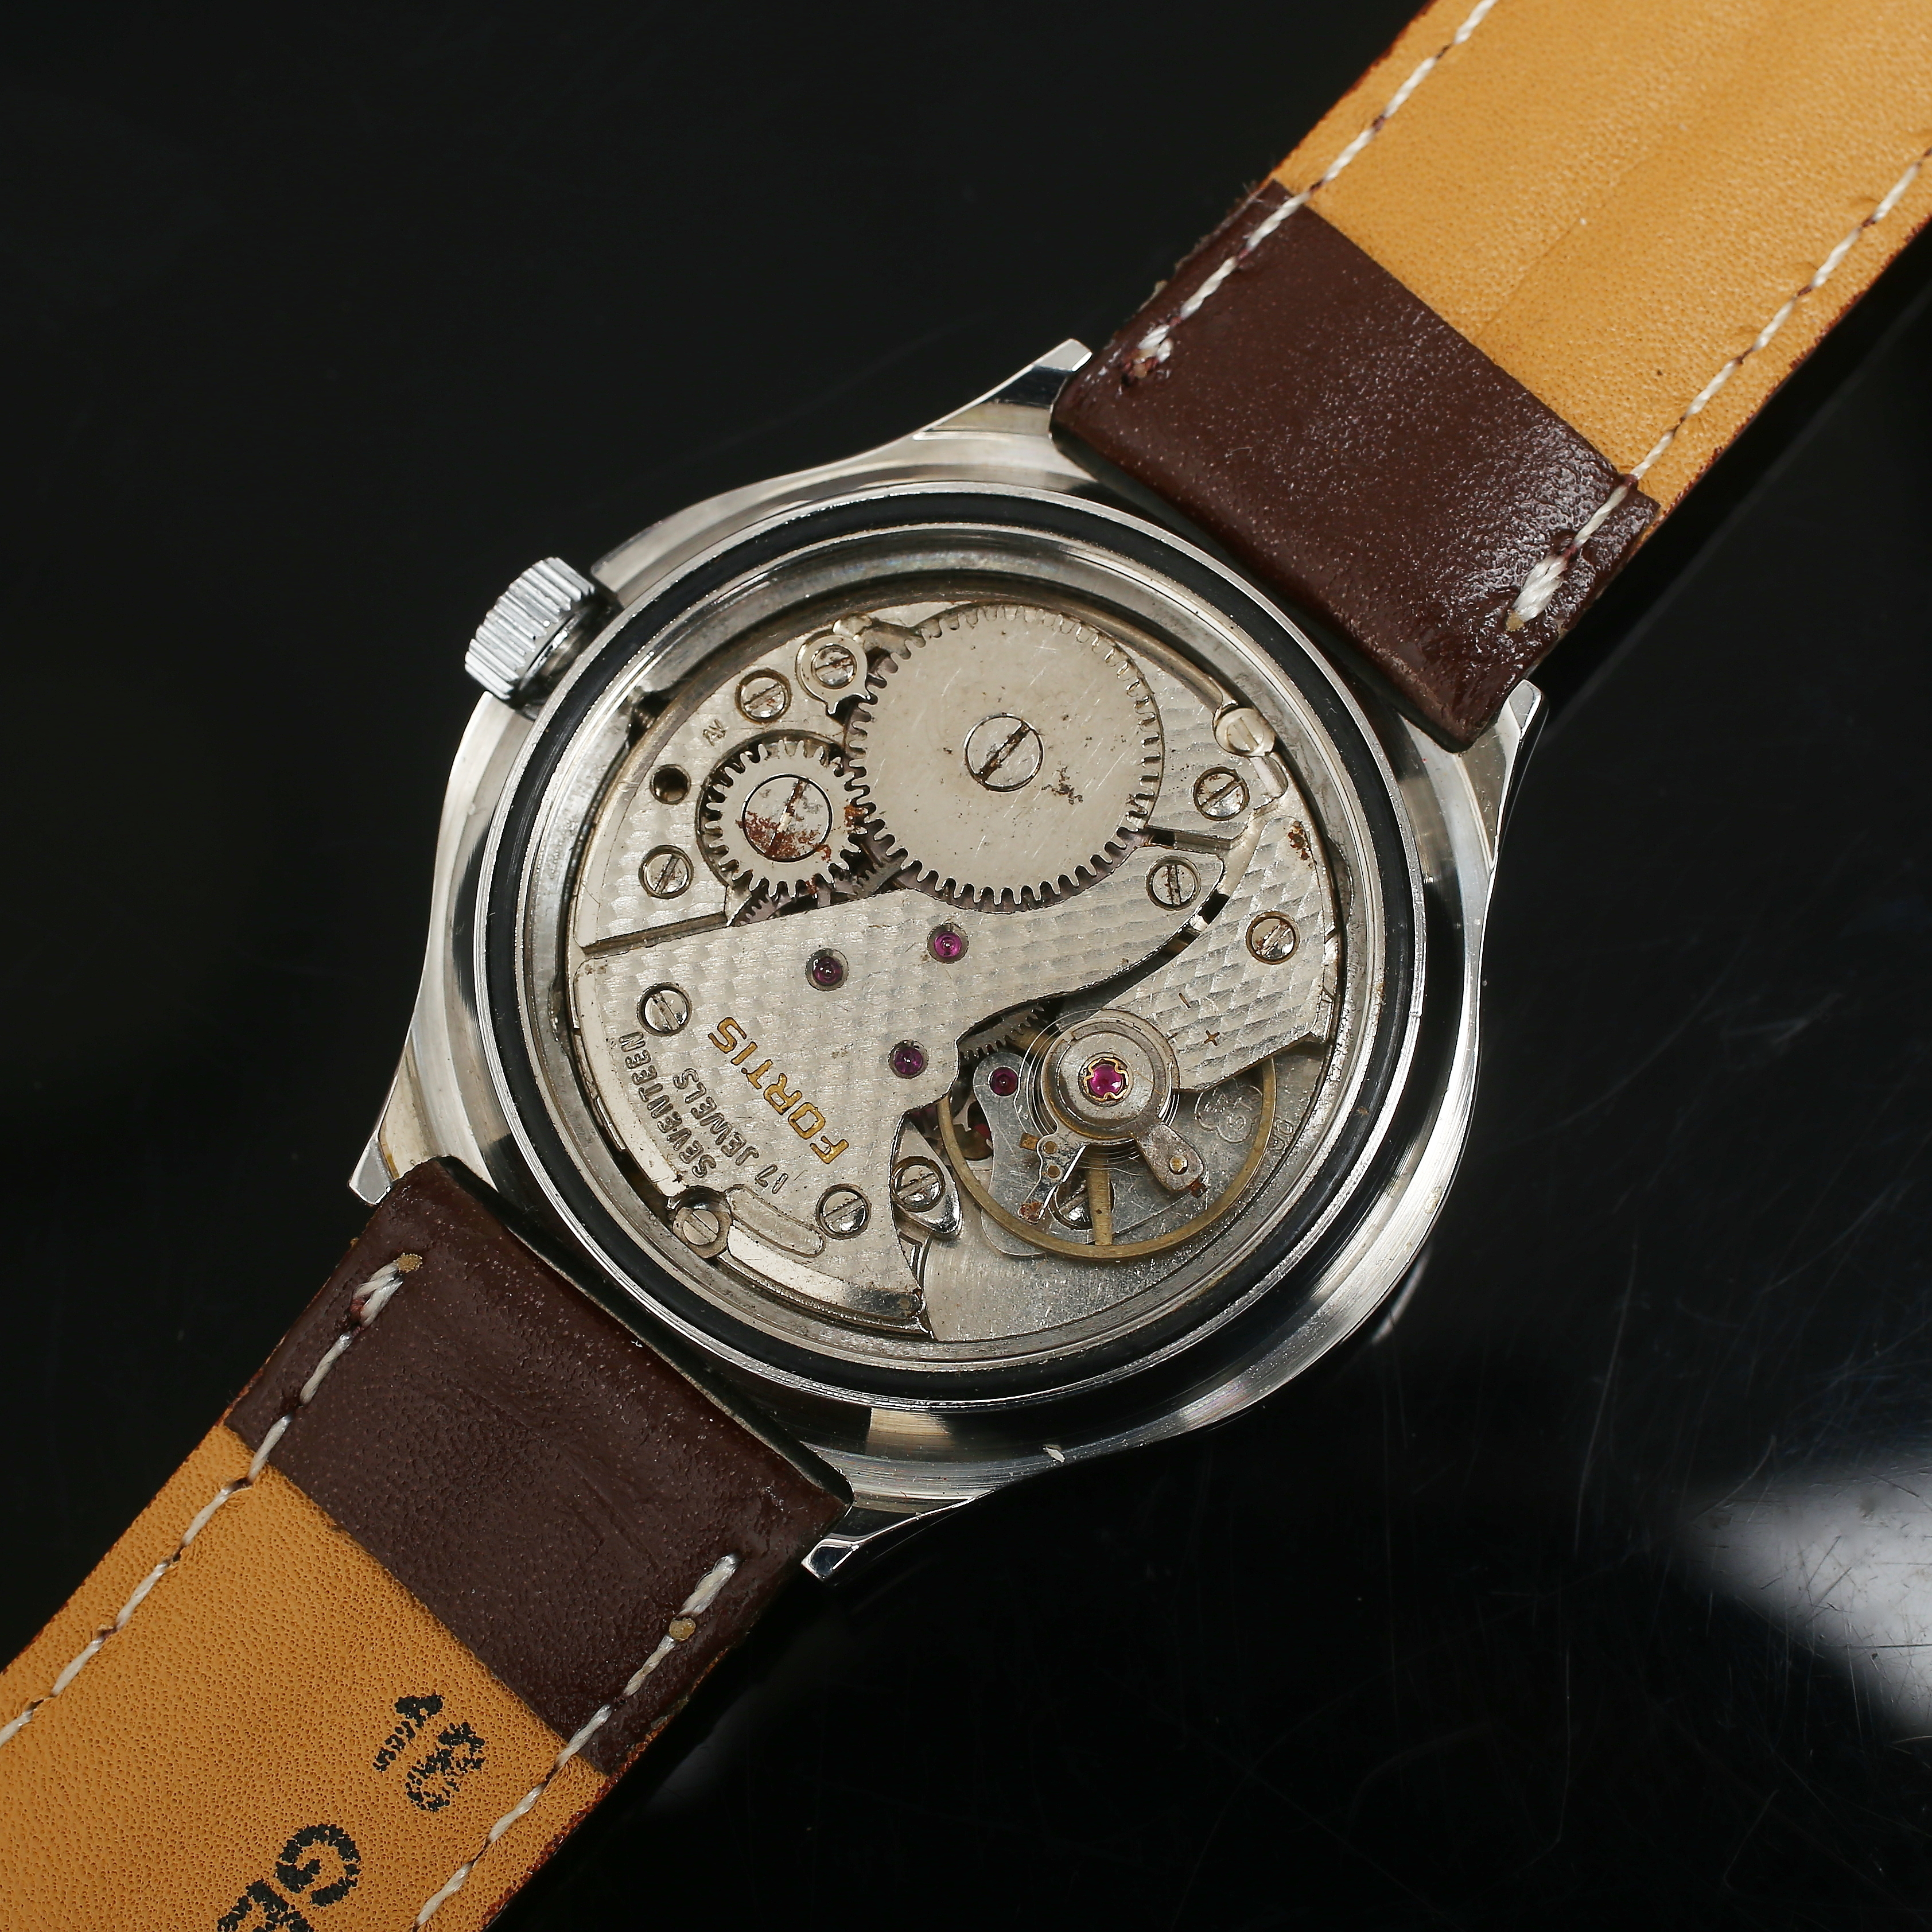 images for 821870 armbandsur fortis inabloc manuell auctionet